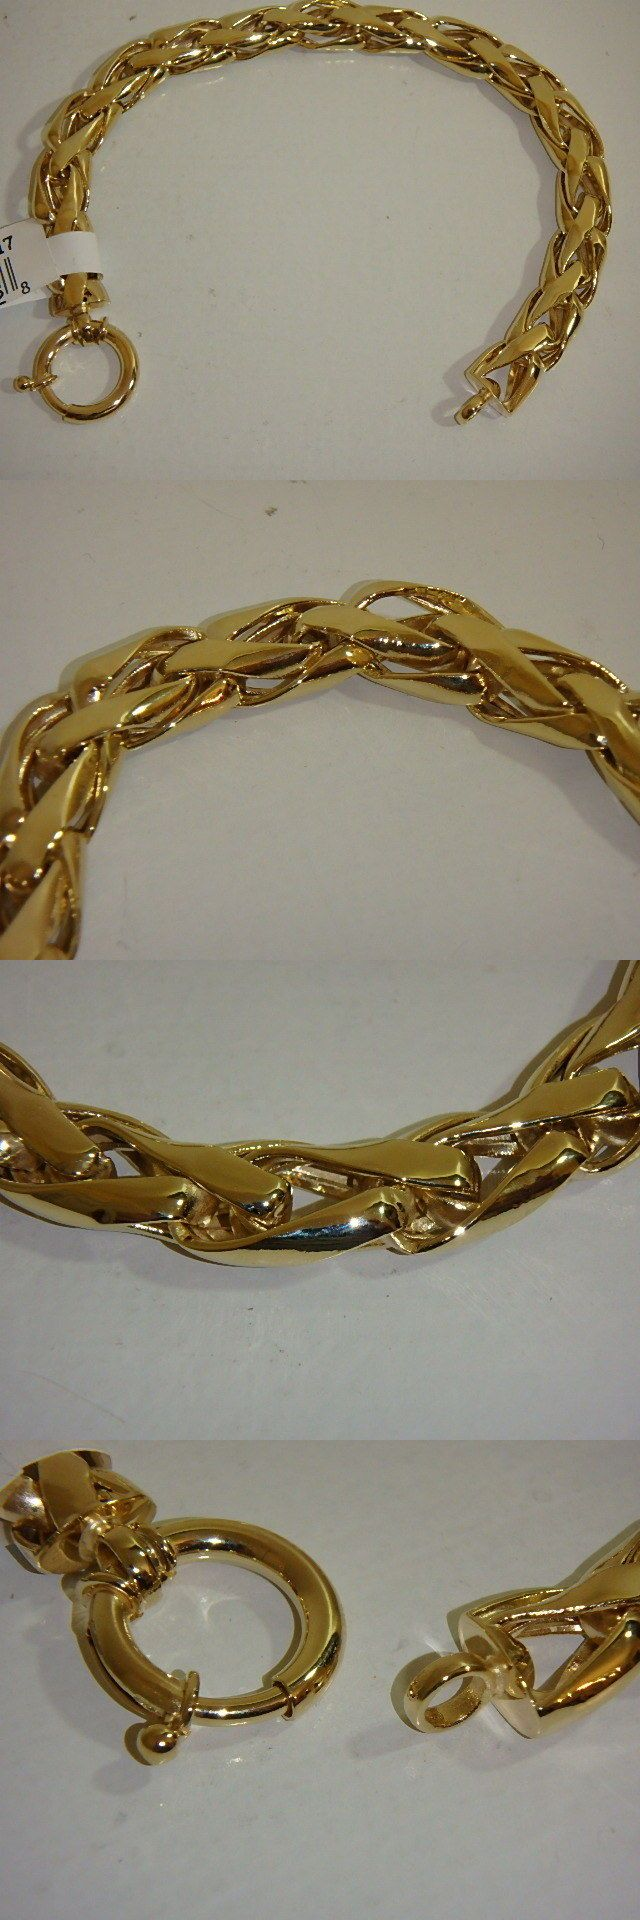 Precious Metal without Stones 164313: 14K Yellow Gold Polished Woven Wheat Bracelet New 9.5 Grams 7 1 4 Inch Qvc -> BUY IT NOW ONLY: $263.49 on eBay!